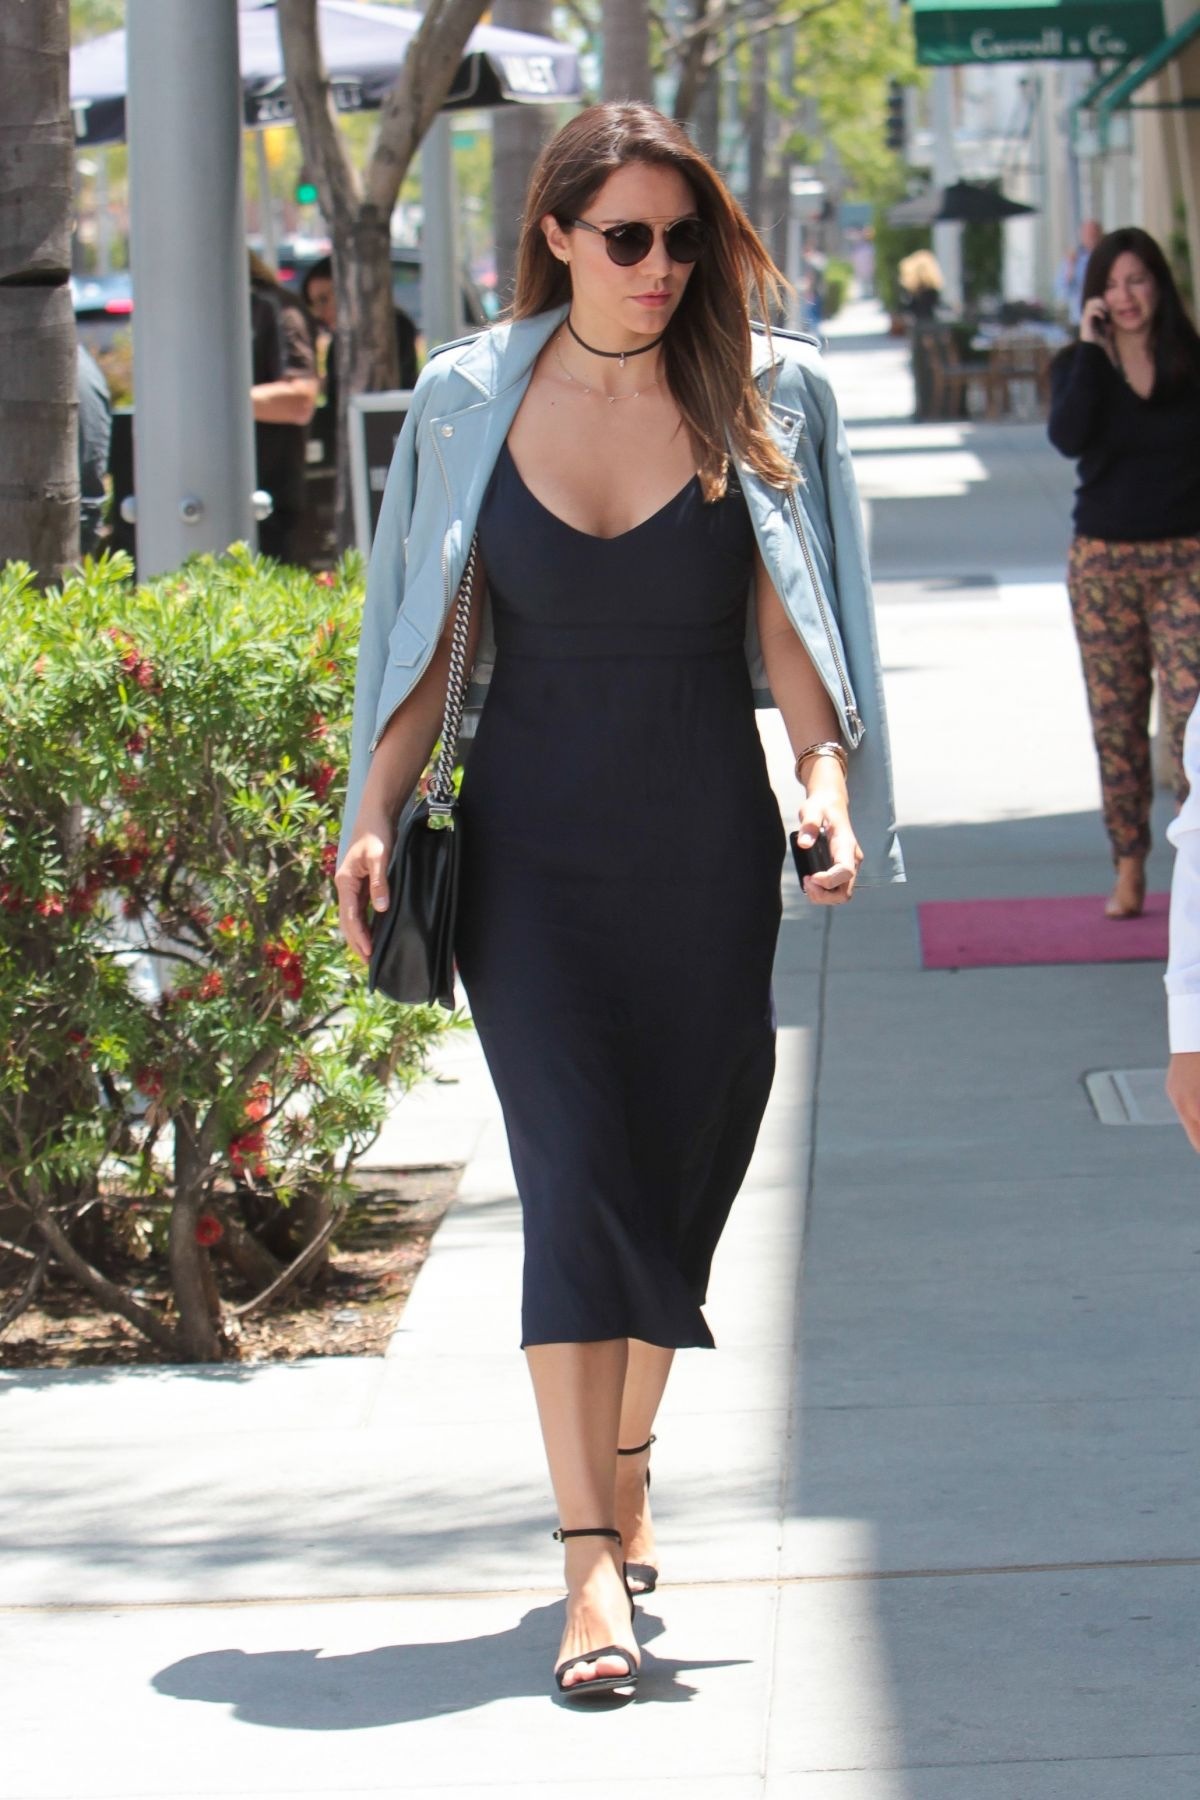 KATHERINE MCPHEE in Tight Dress Out in Beverly Hills 05/08/2017